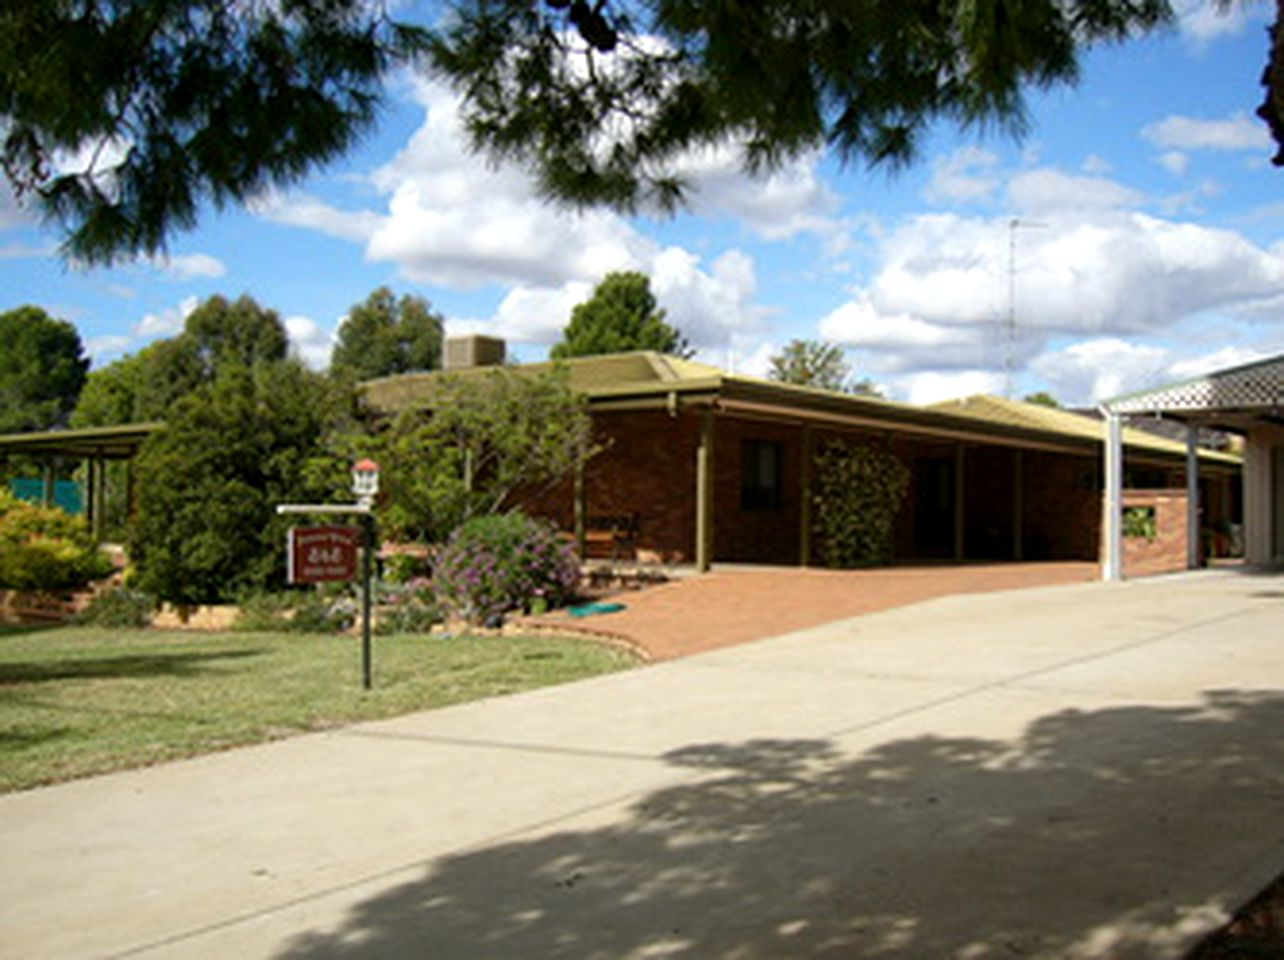 Cottages (Forbes, New South Wales, Australia)